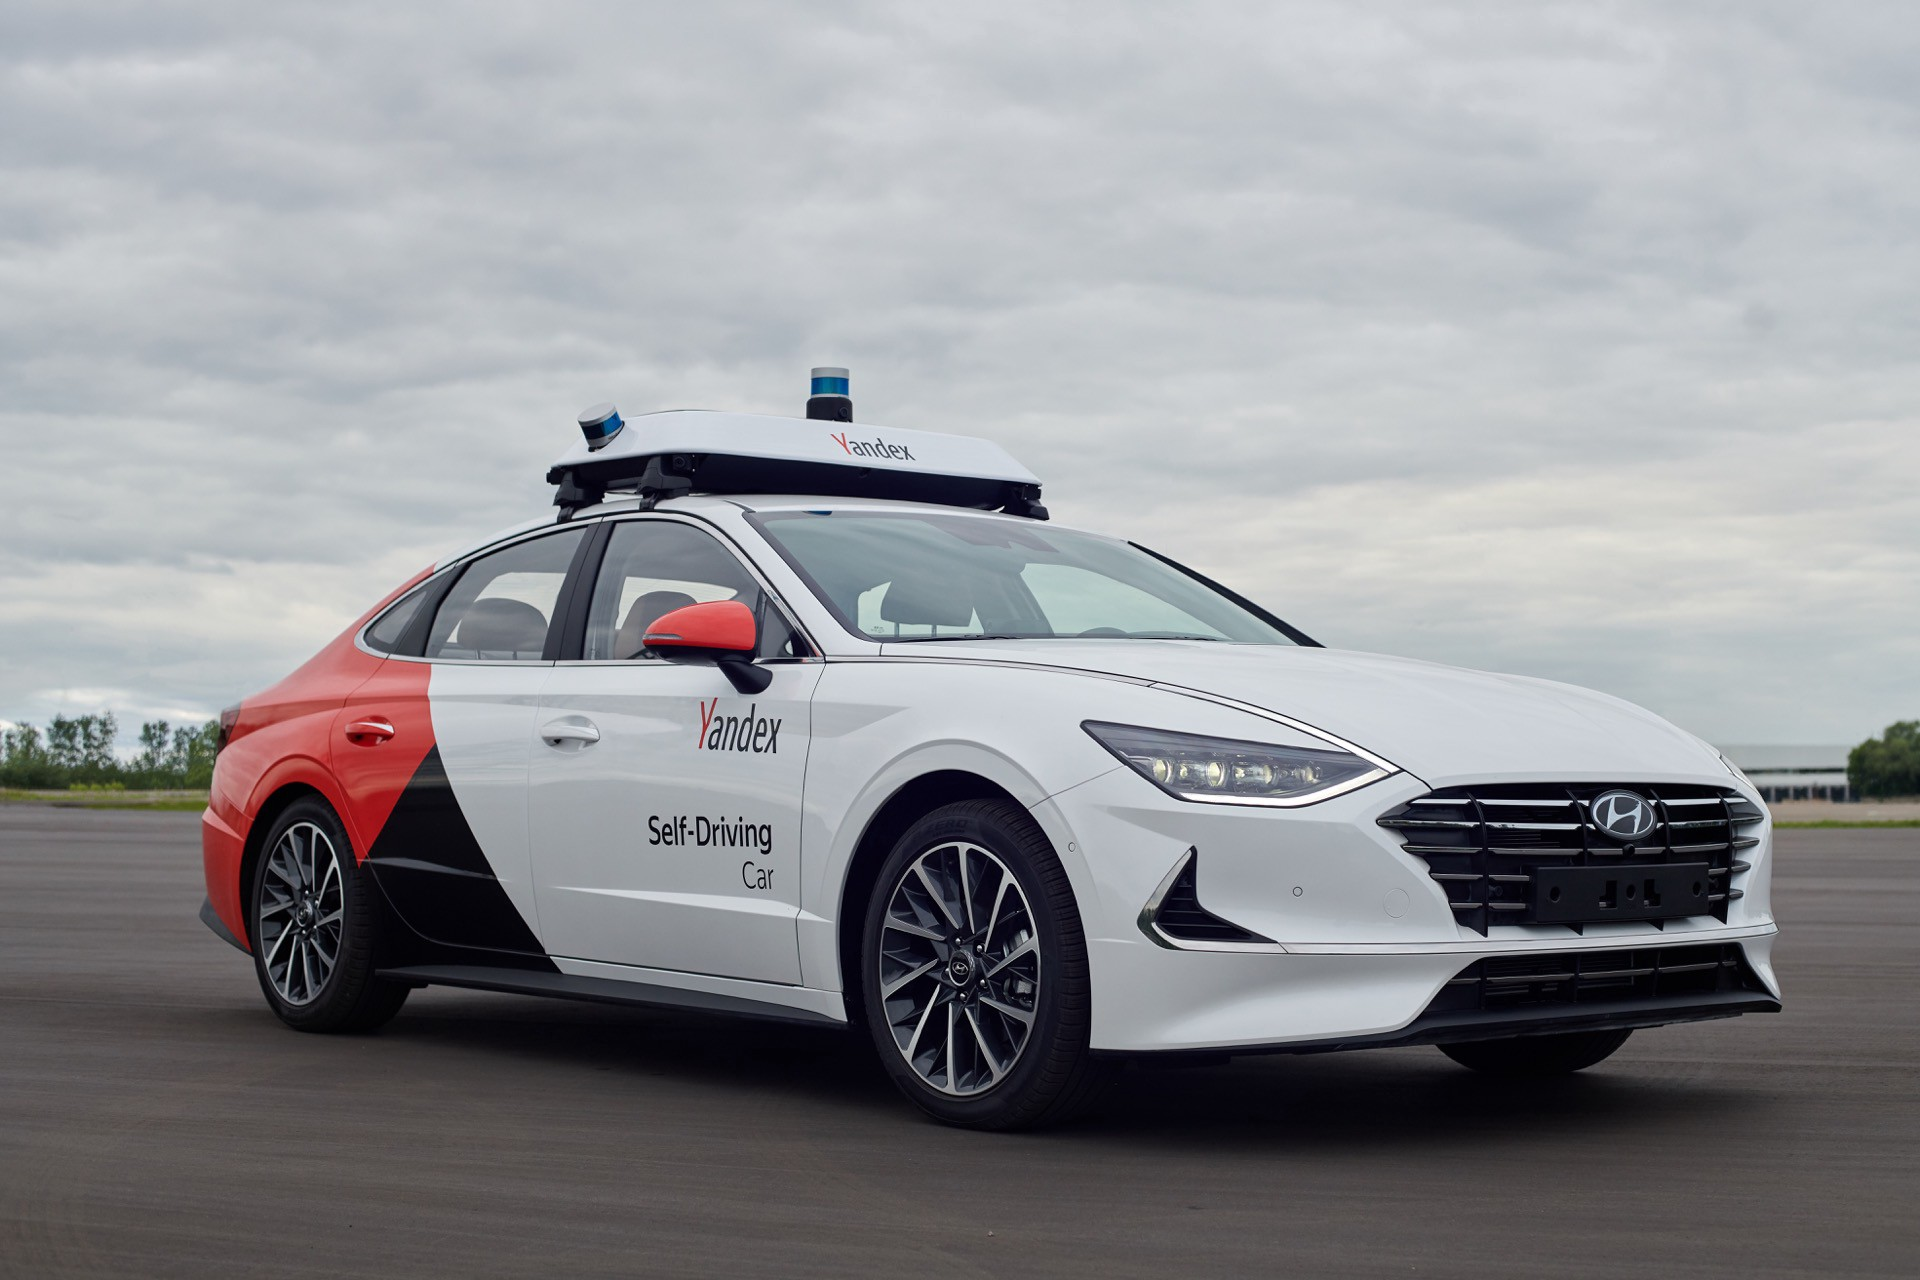 International Auto Show 2020.Yandex Comes To Detroit Robo Taxi Service To Run During The